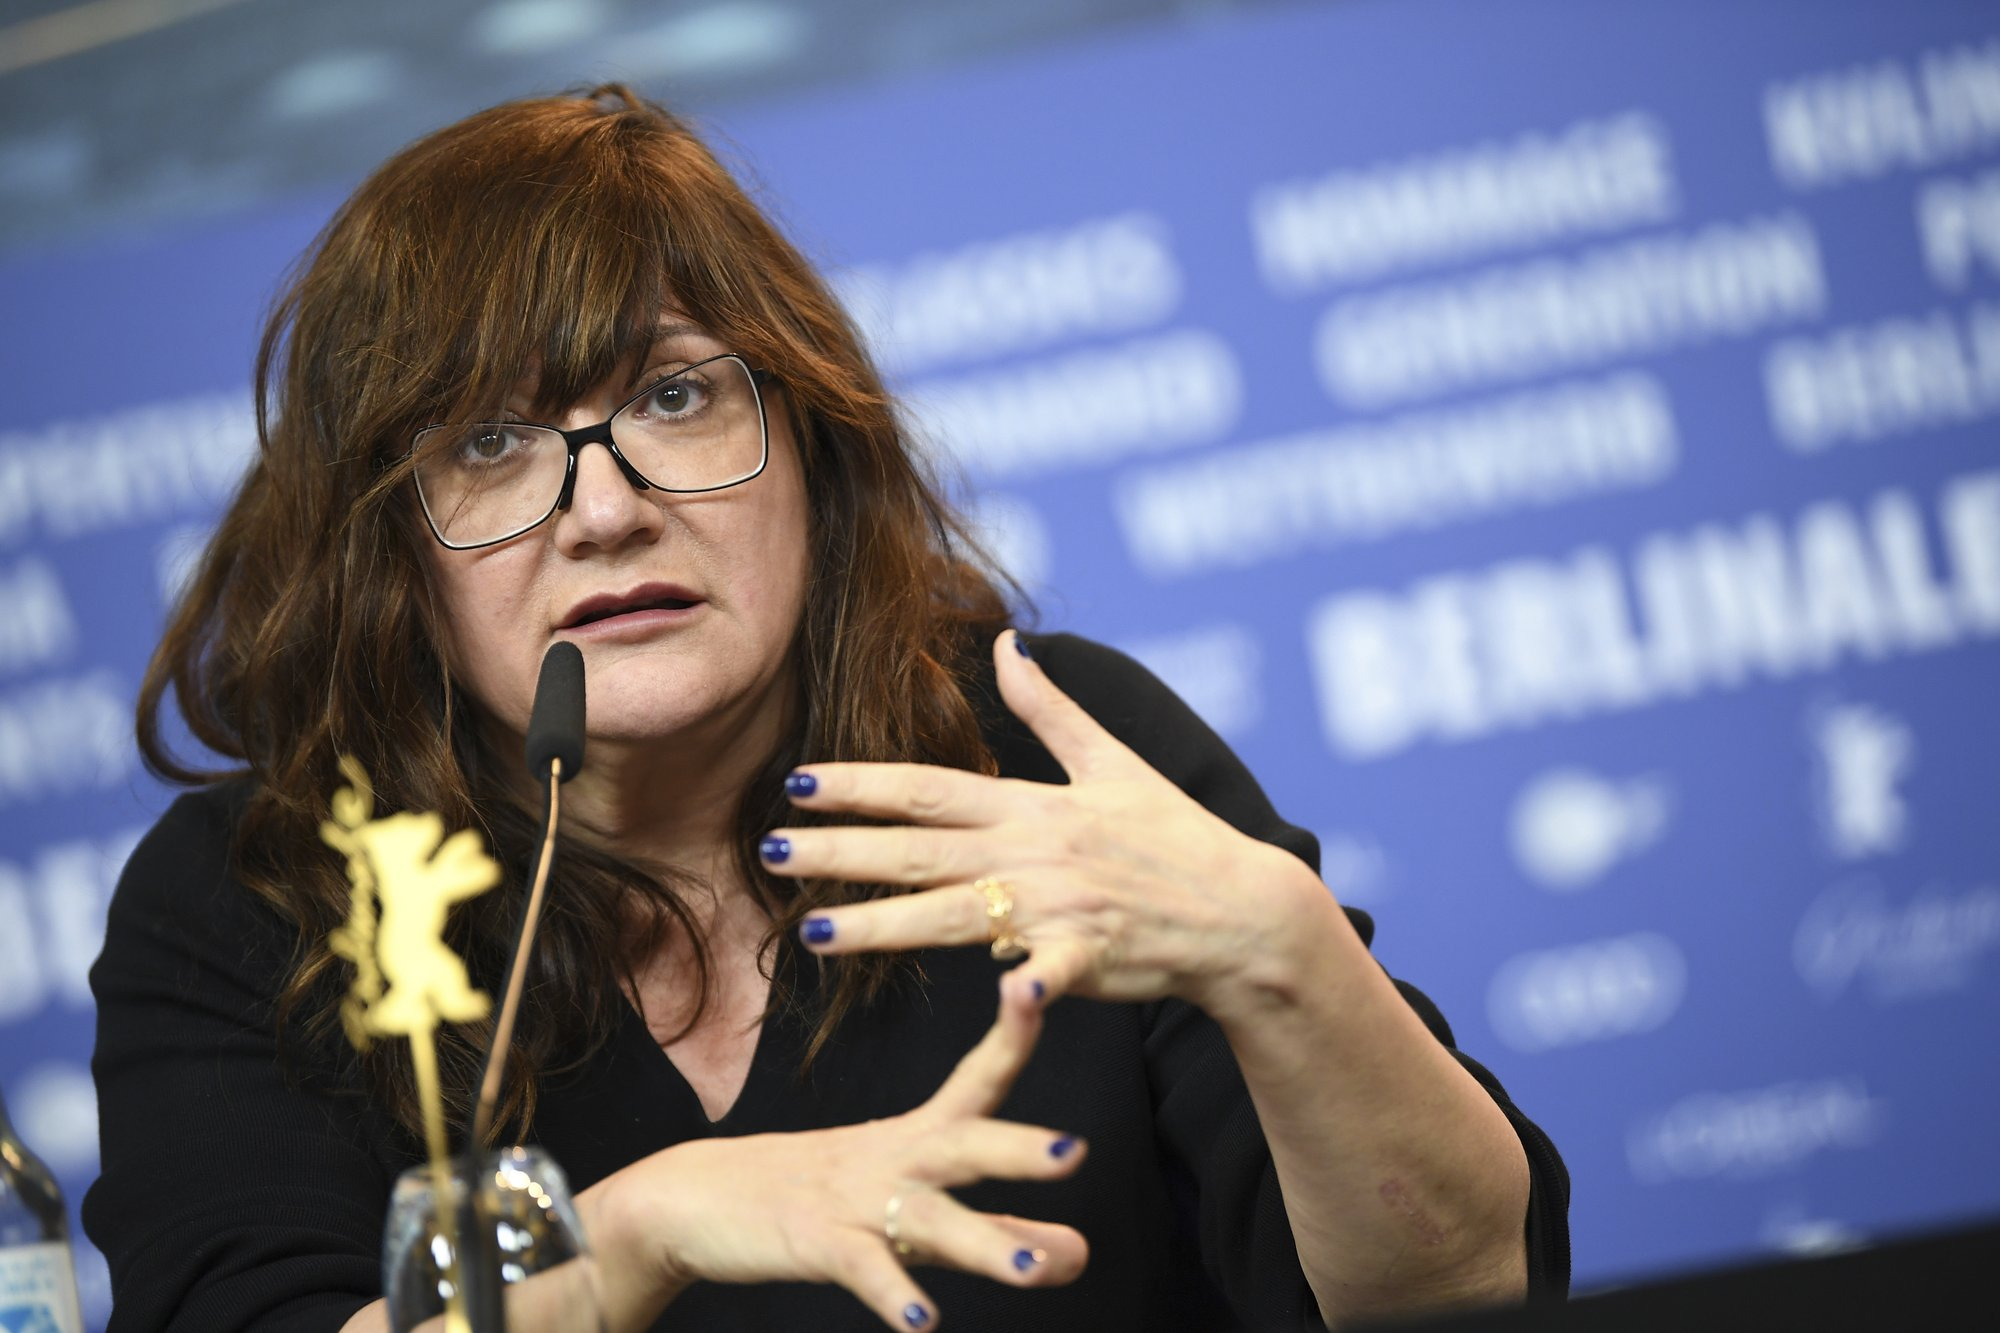 Director Isabel Coixet attends a news conference about the film 'Elisa und Marcela' at the 2019 Berlinale Film Festival in Berlin, Germany, on Wednesday, Feb. 13, 2019. Photo: AP